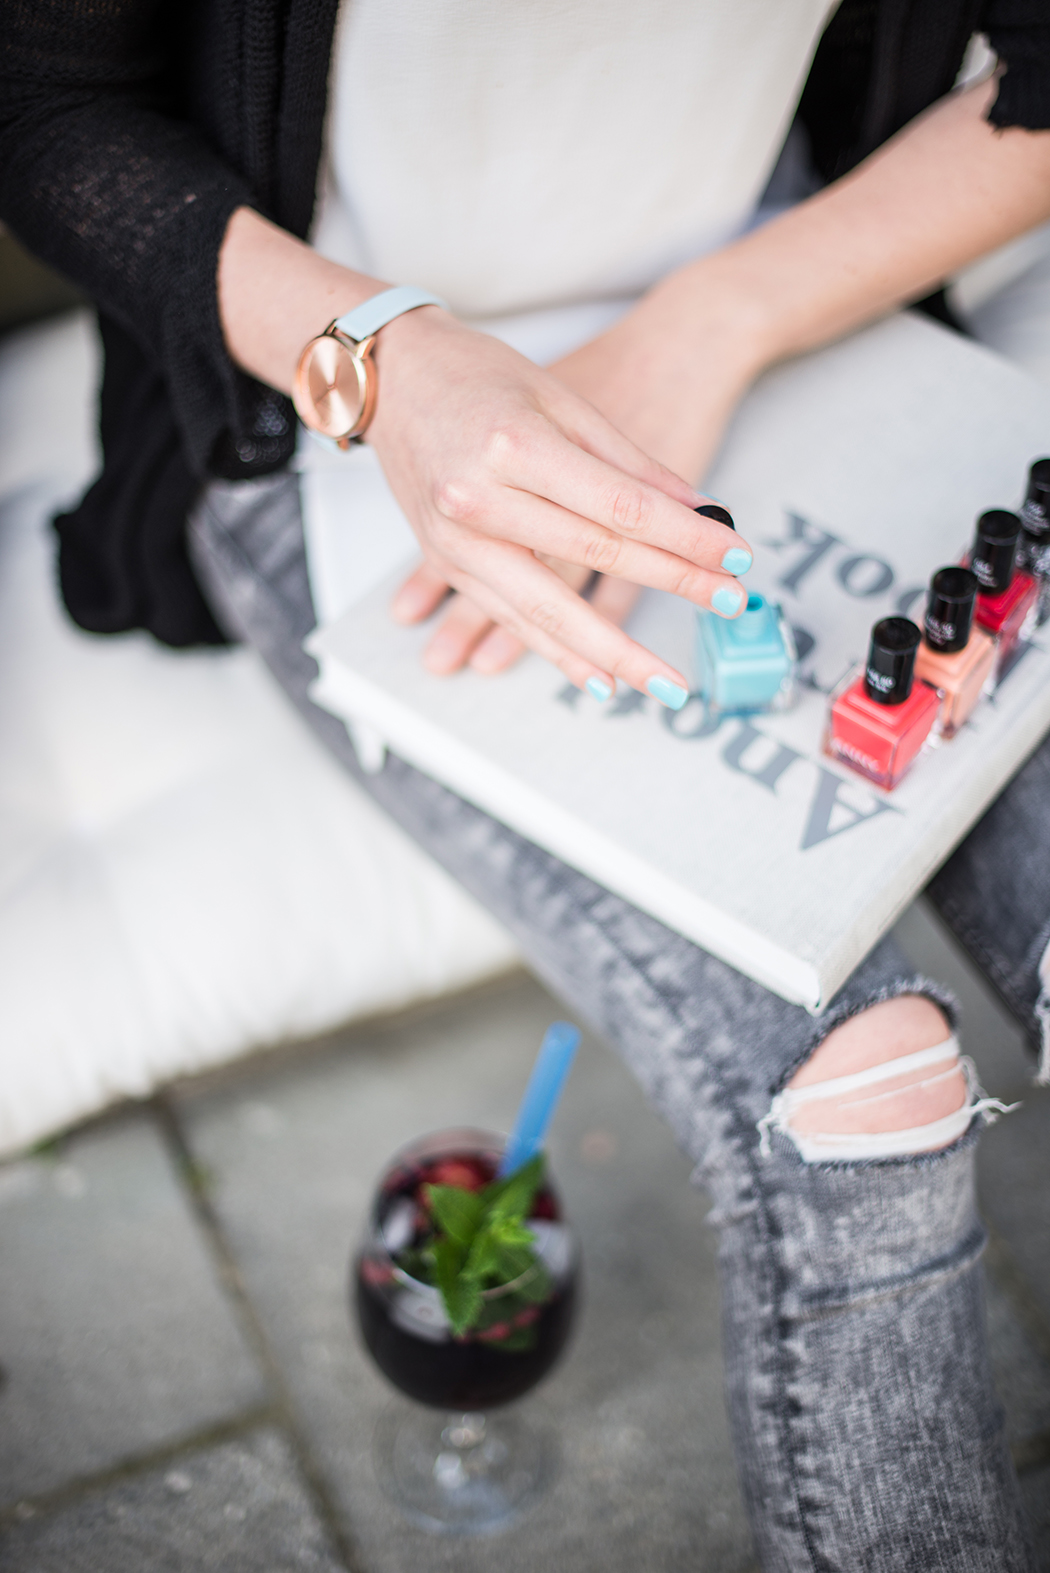 Anny-Nagellack-Blogger-in-the-city-collection-Qualität-Review-Beautyblogger-München-Deutschland-Naildesign-Fashionblog-Fashionblogger-Lindarella-Blog-Lifestyle-3